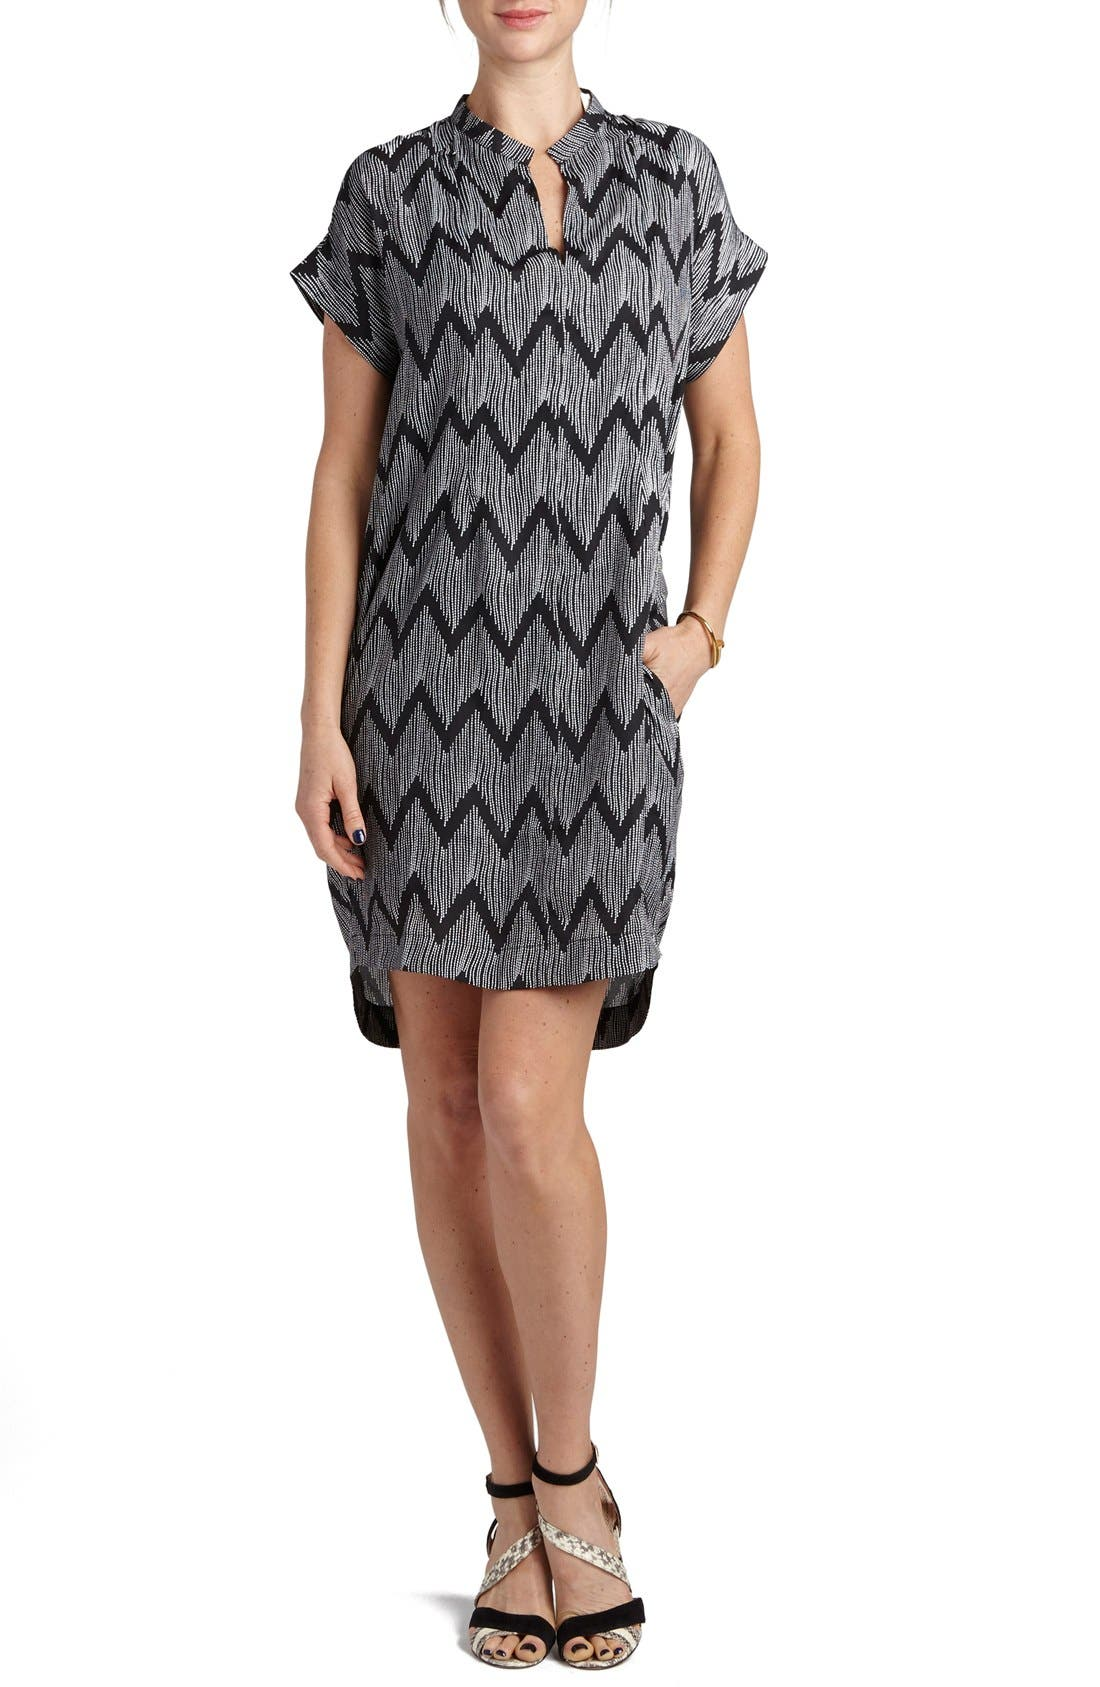 Loyal Hana Cybelle Maternity/Nursing Shirtdress